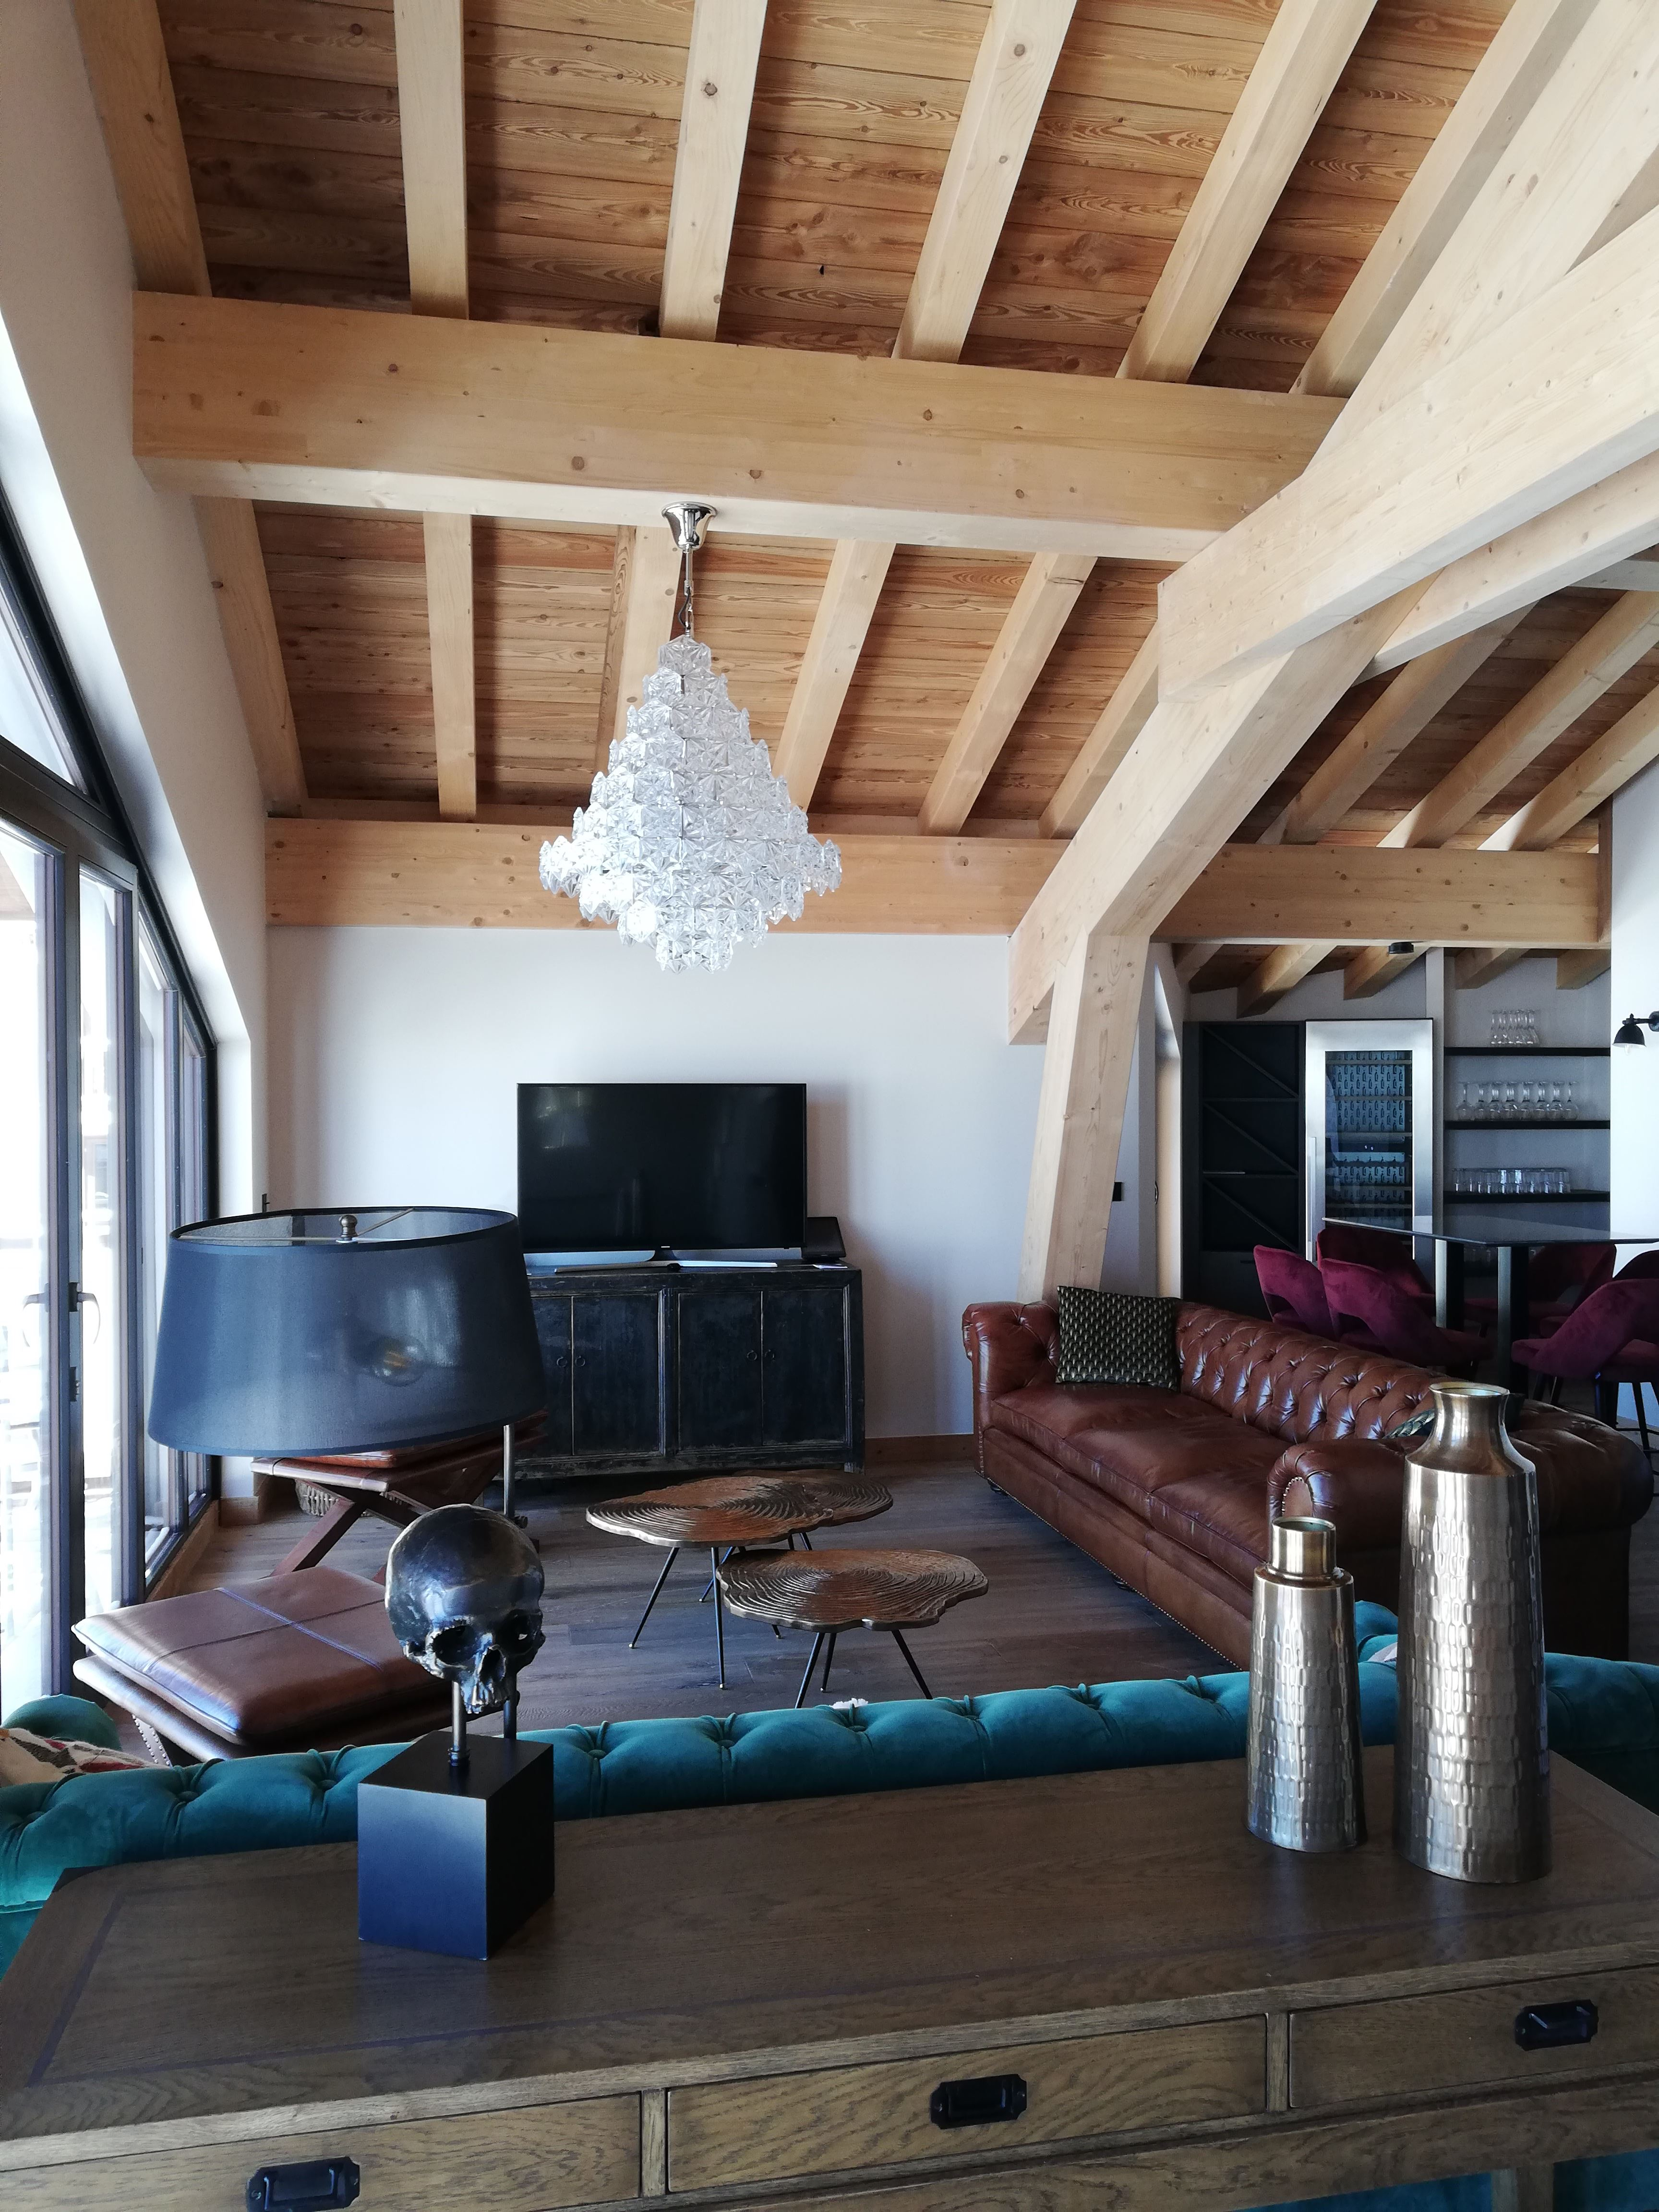 NEW! PRIVATE LUXURY CHALETS - KOH I NOR HOTEL *****